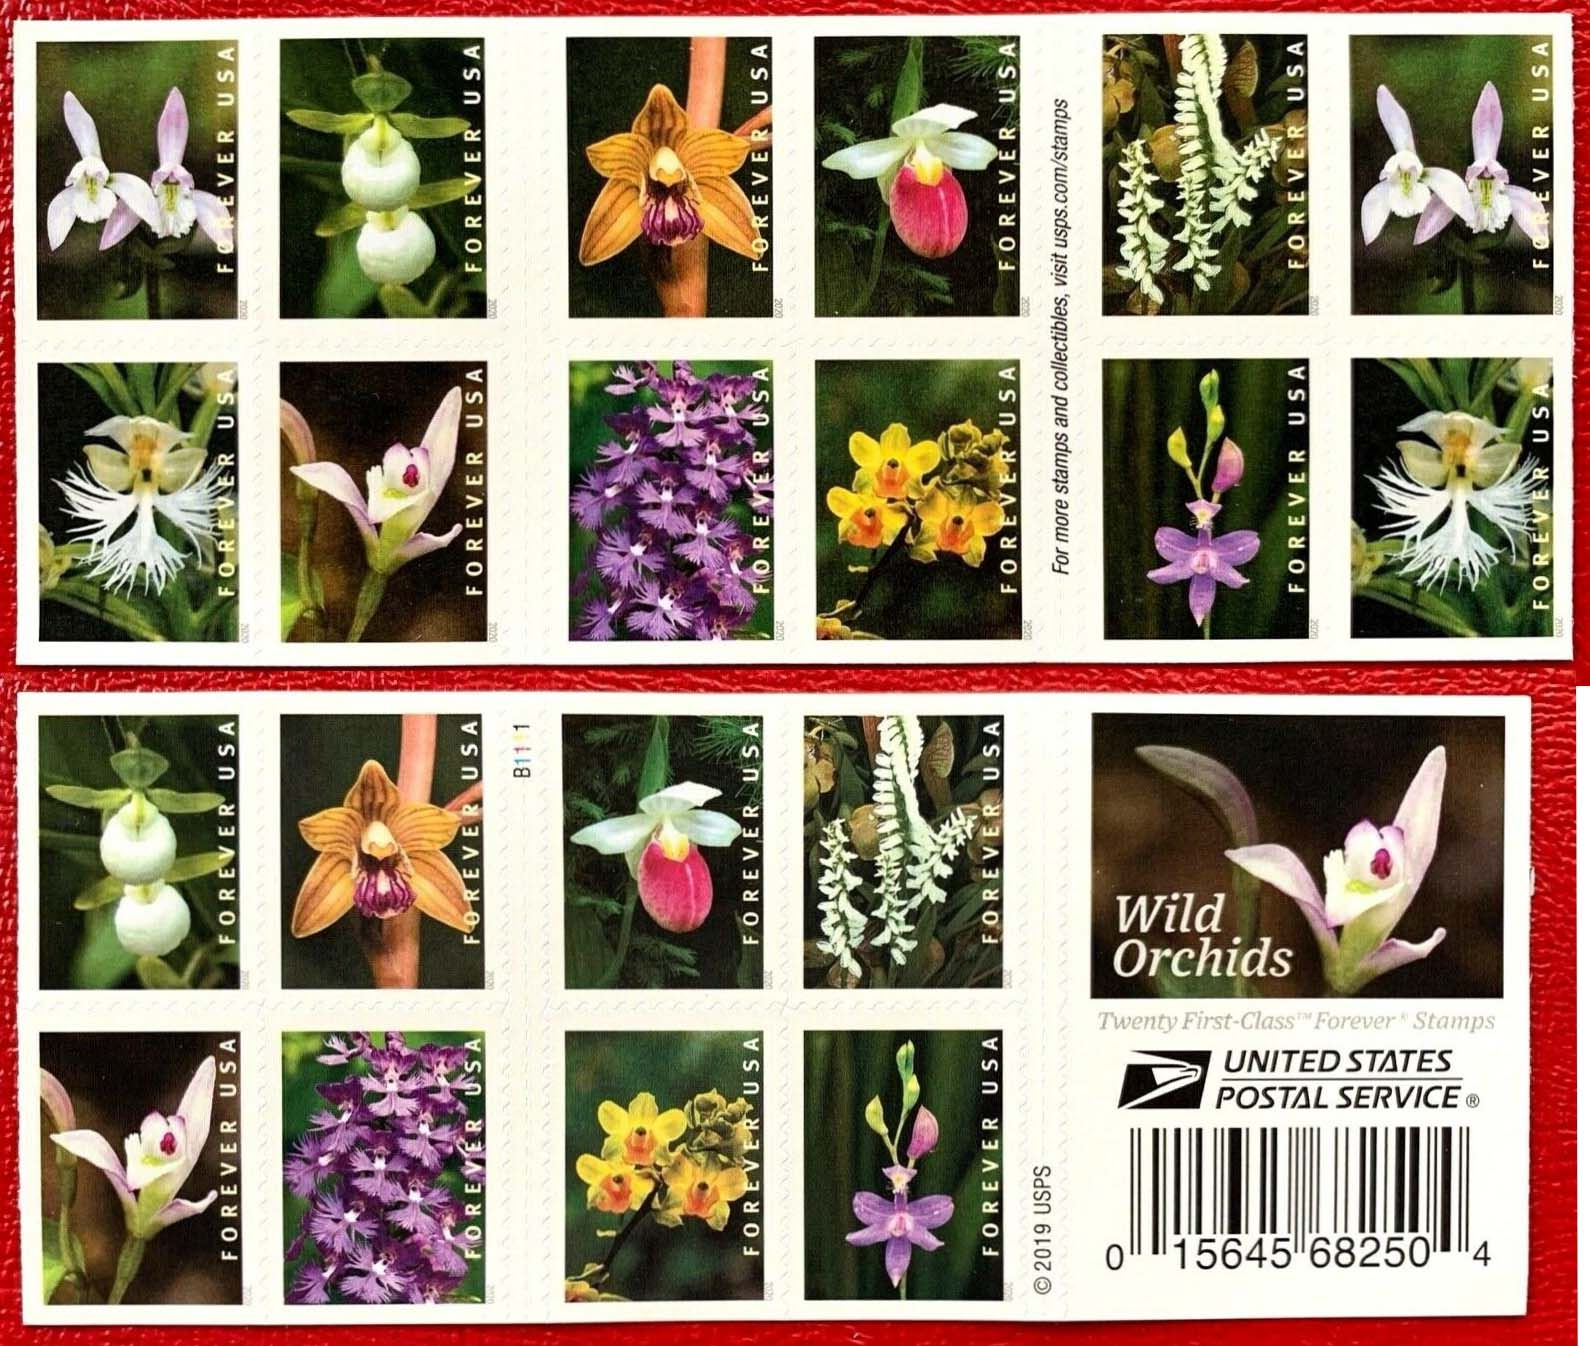 Scott #5435, Double sided Booklet Pane of 20, Wild Orchids